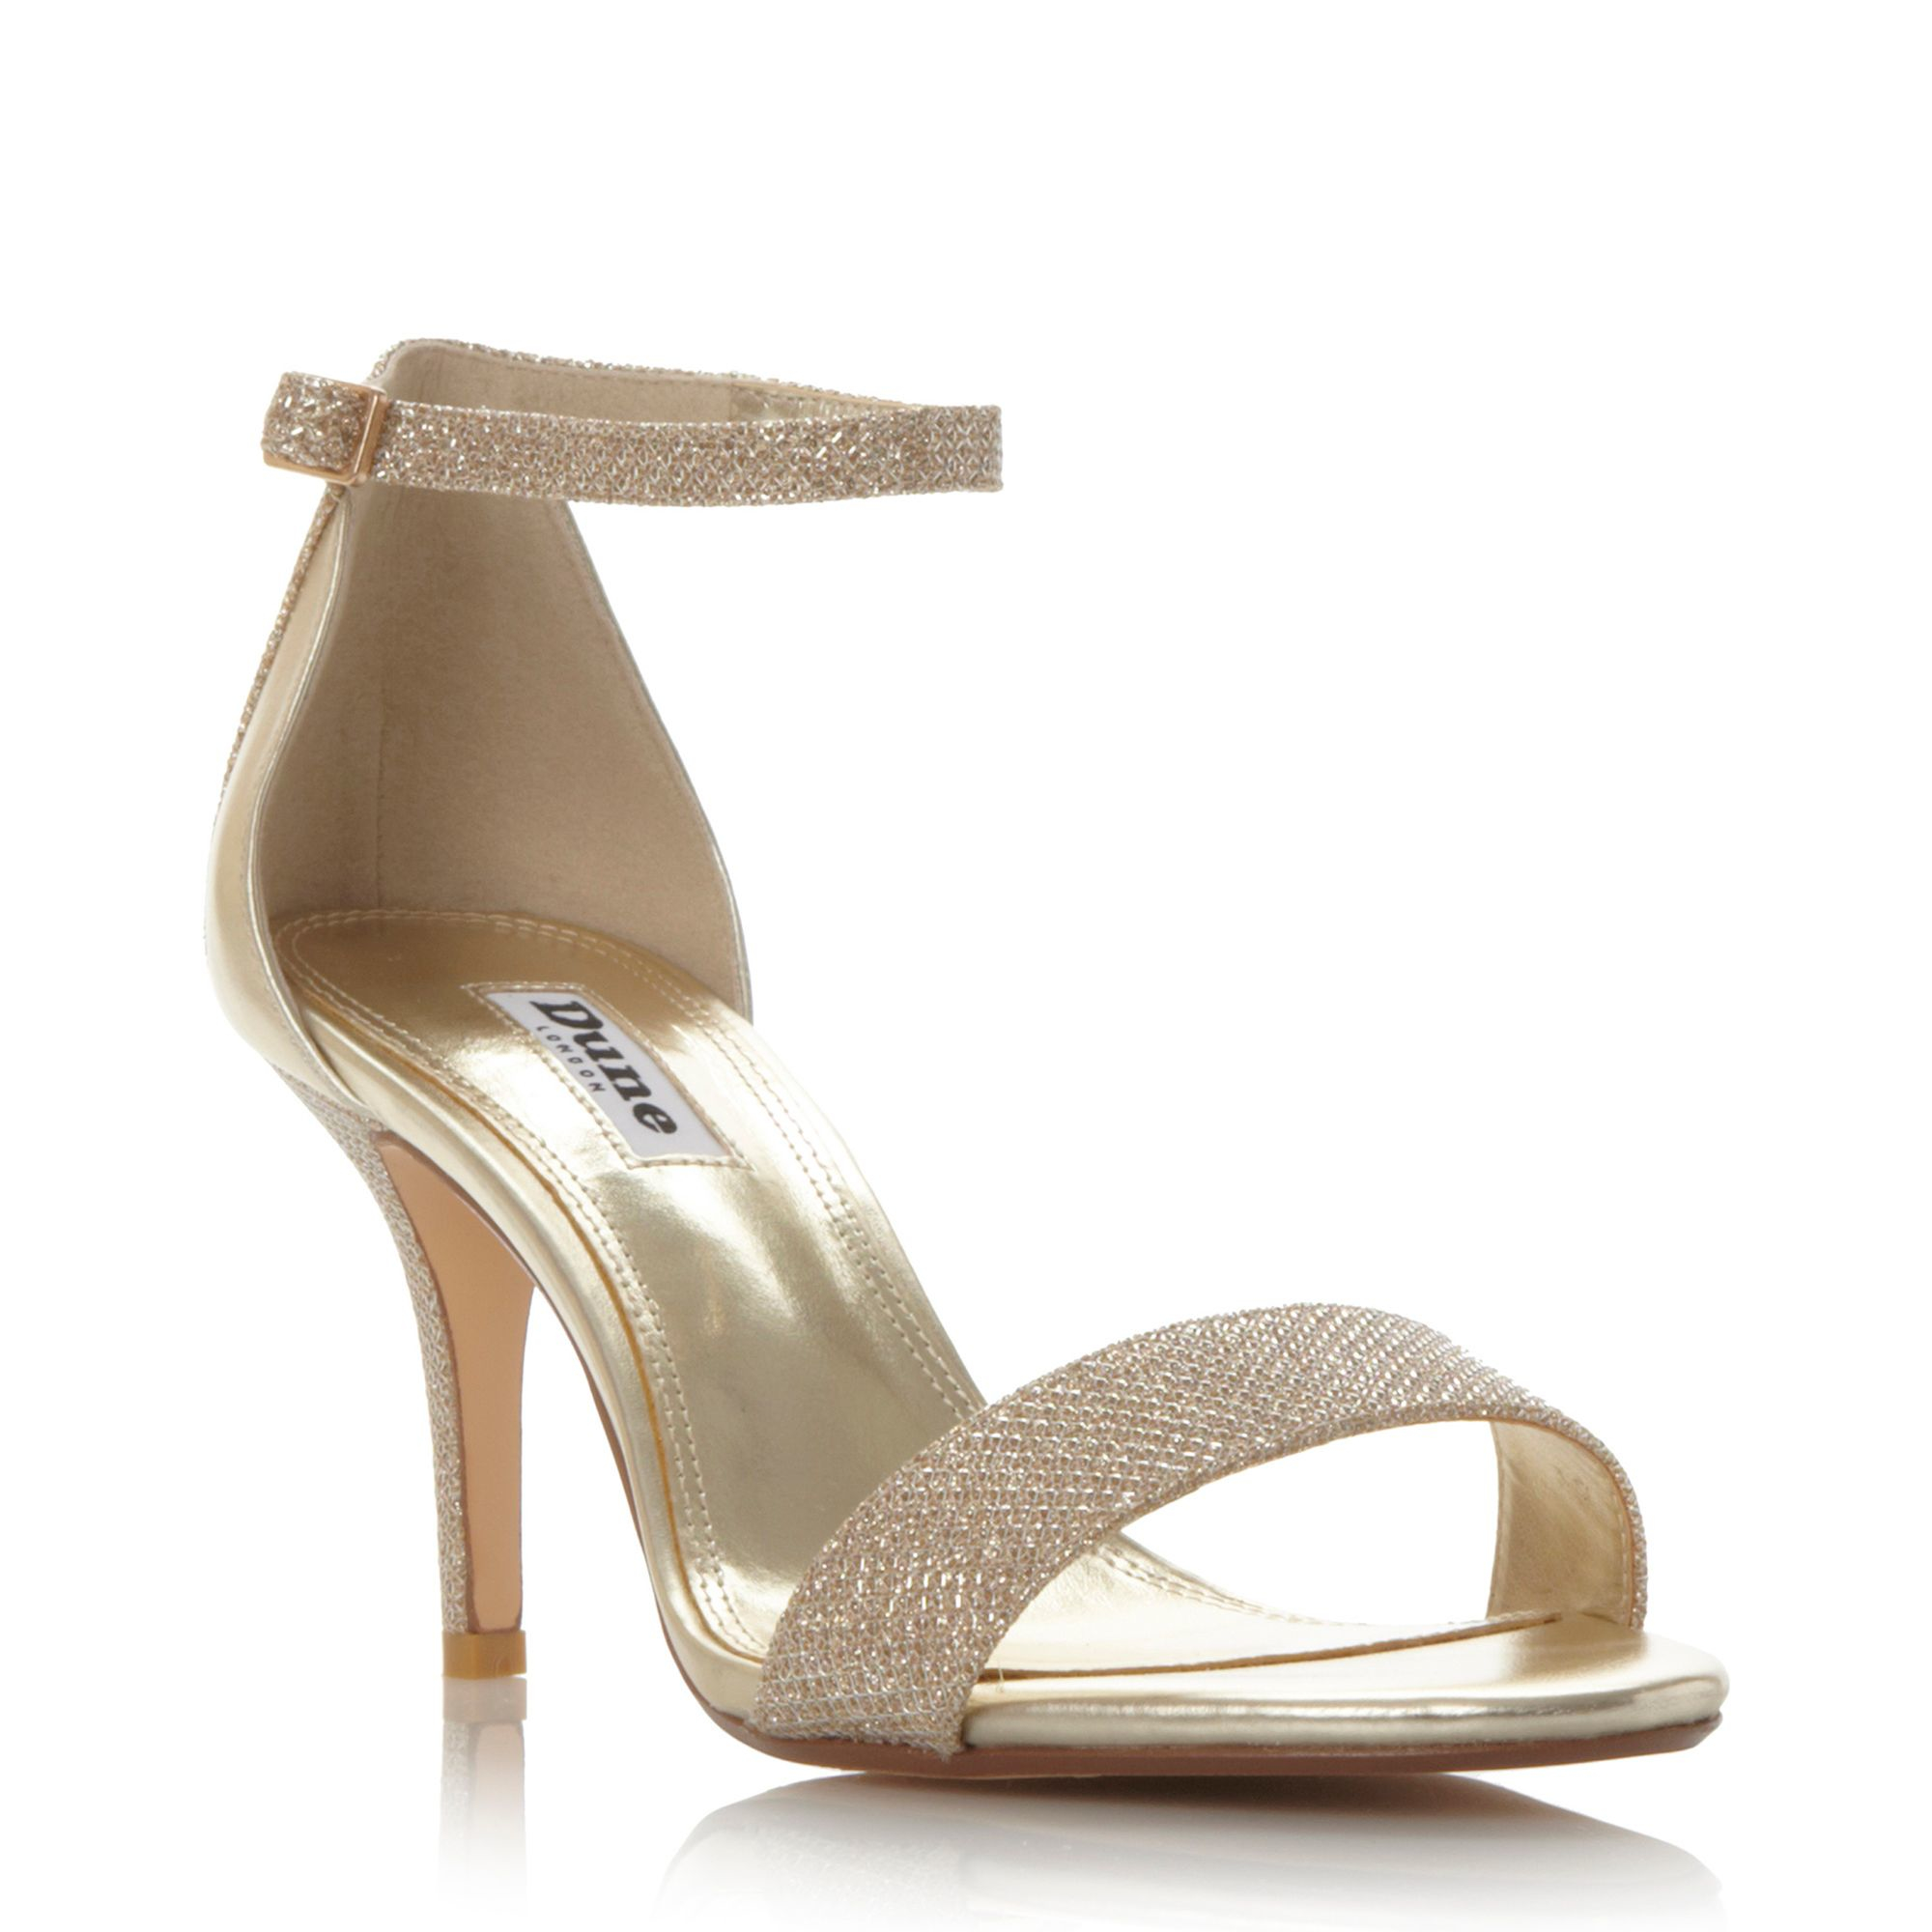 Synthetic High Heels Shoes And Materials